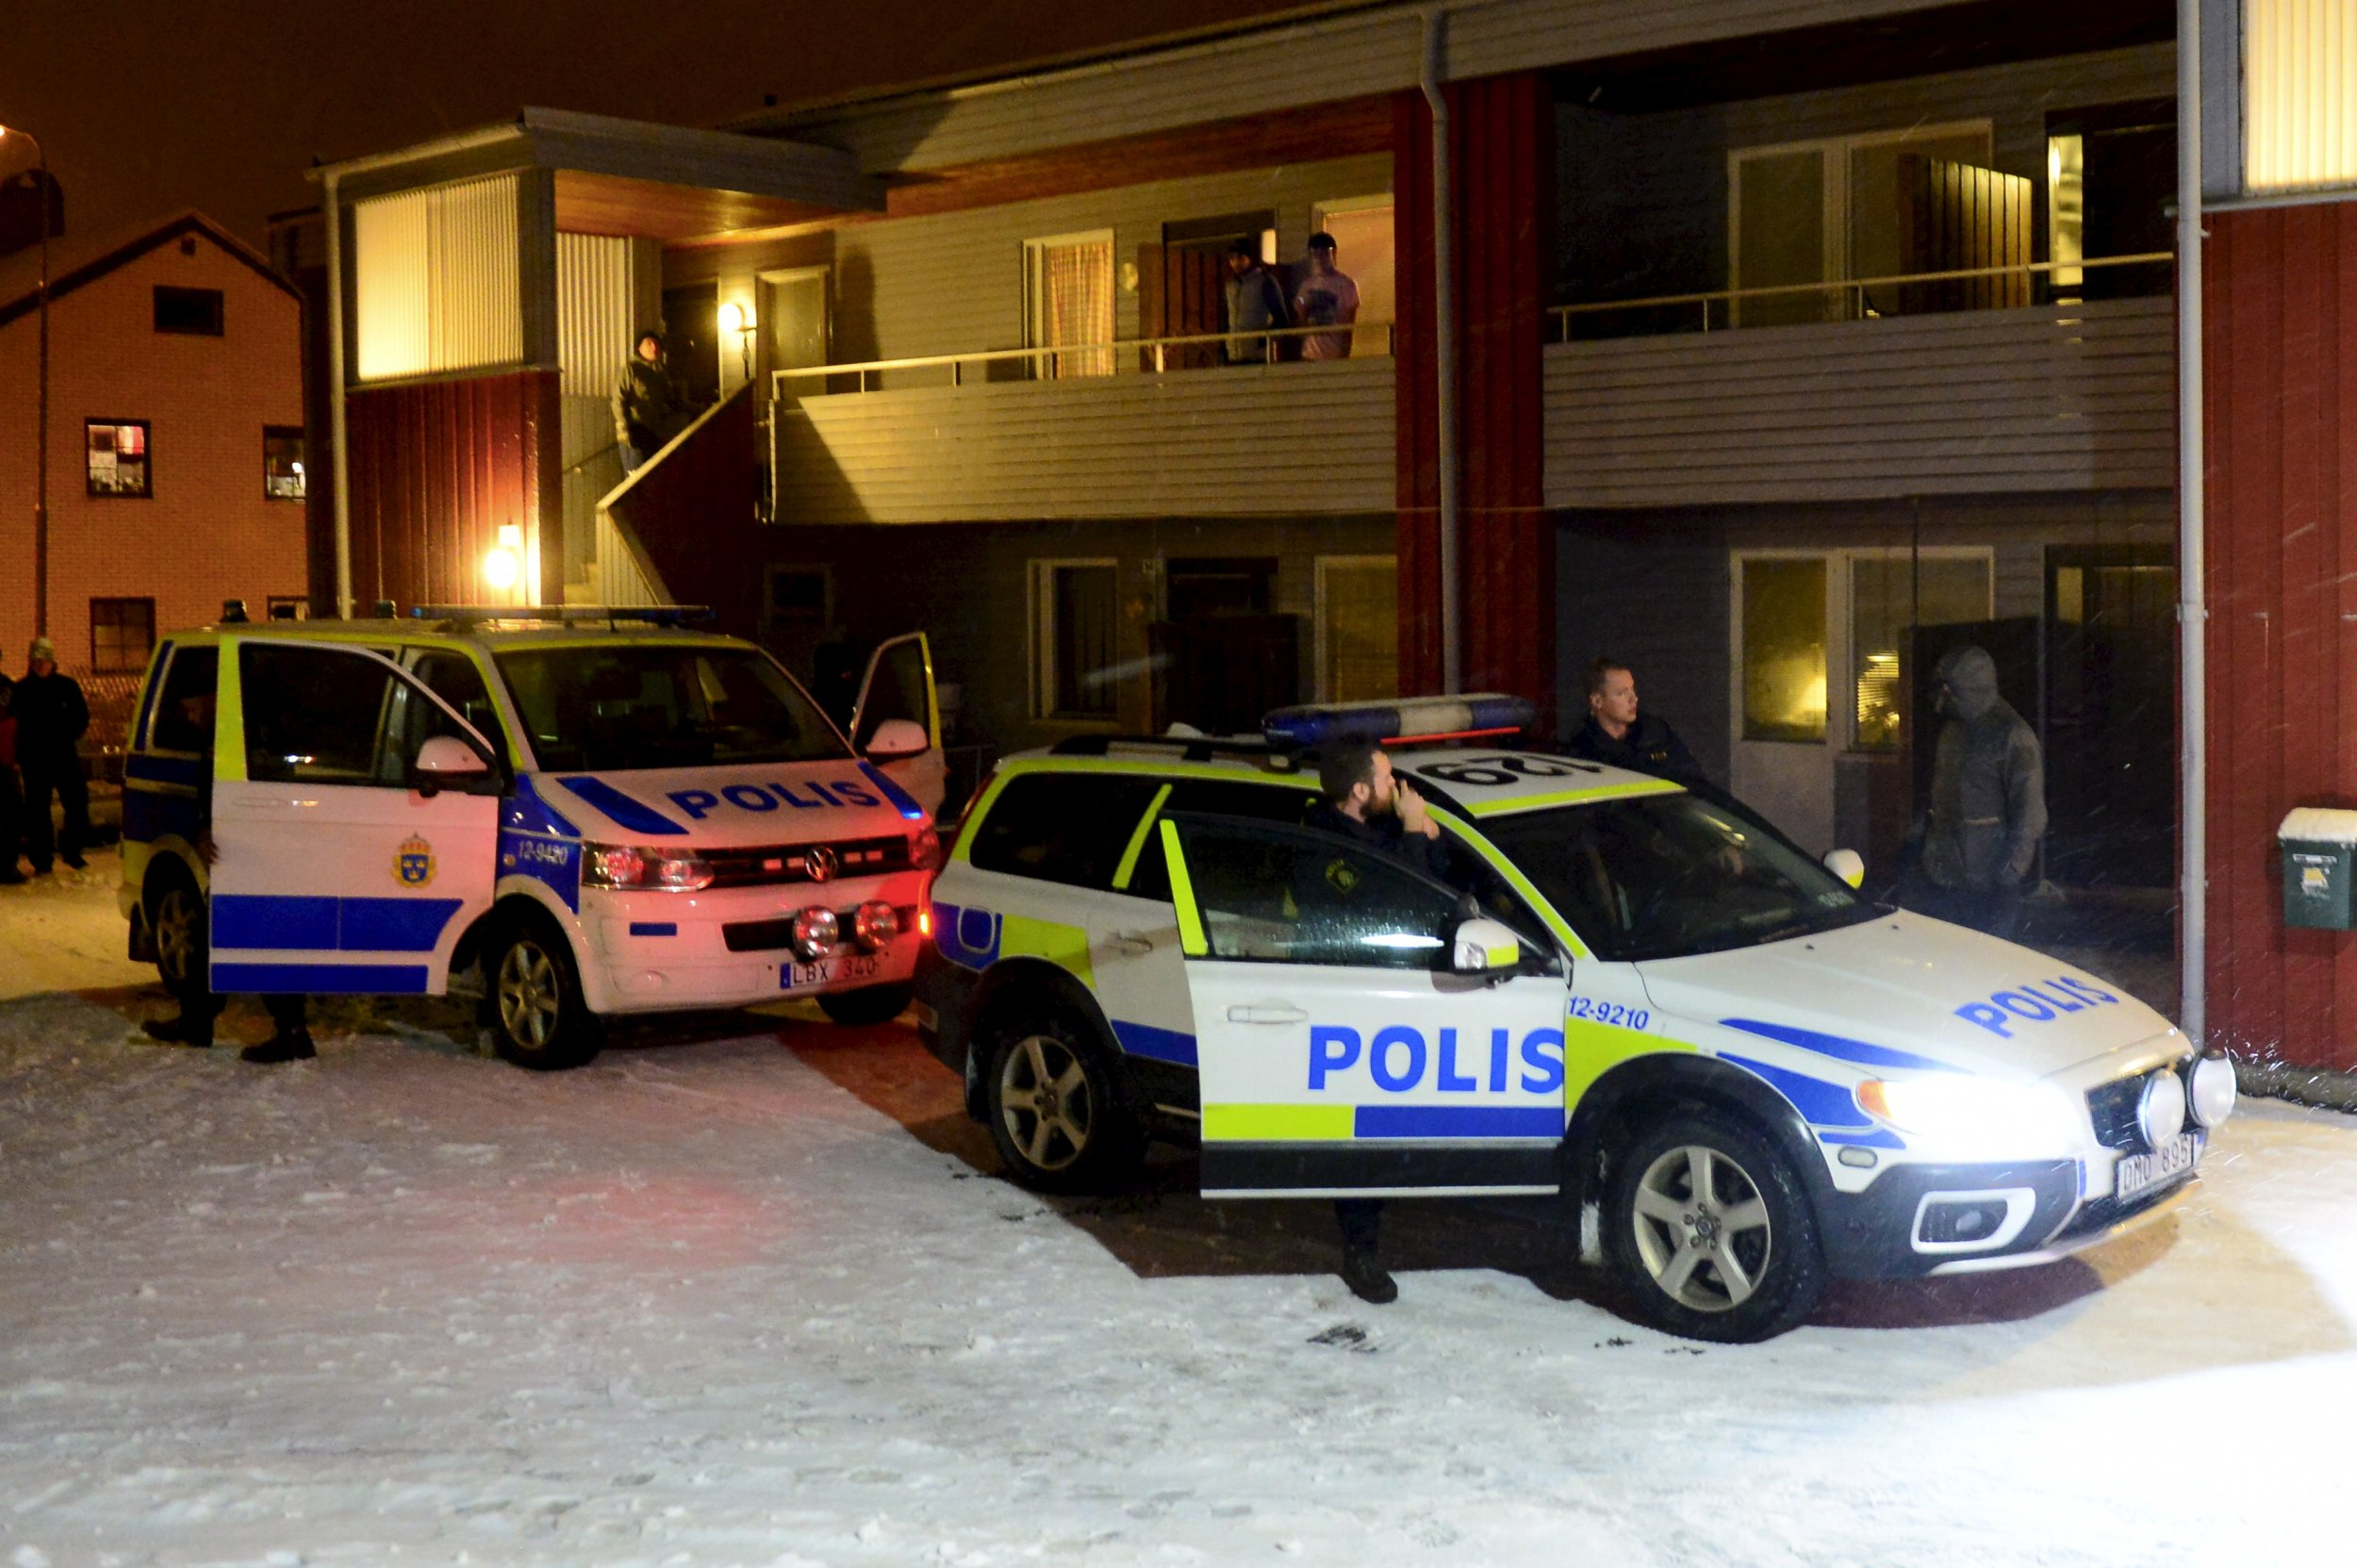 Stabbing at Swedish Asylum Center